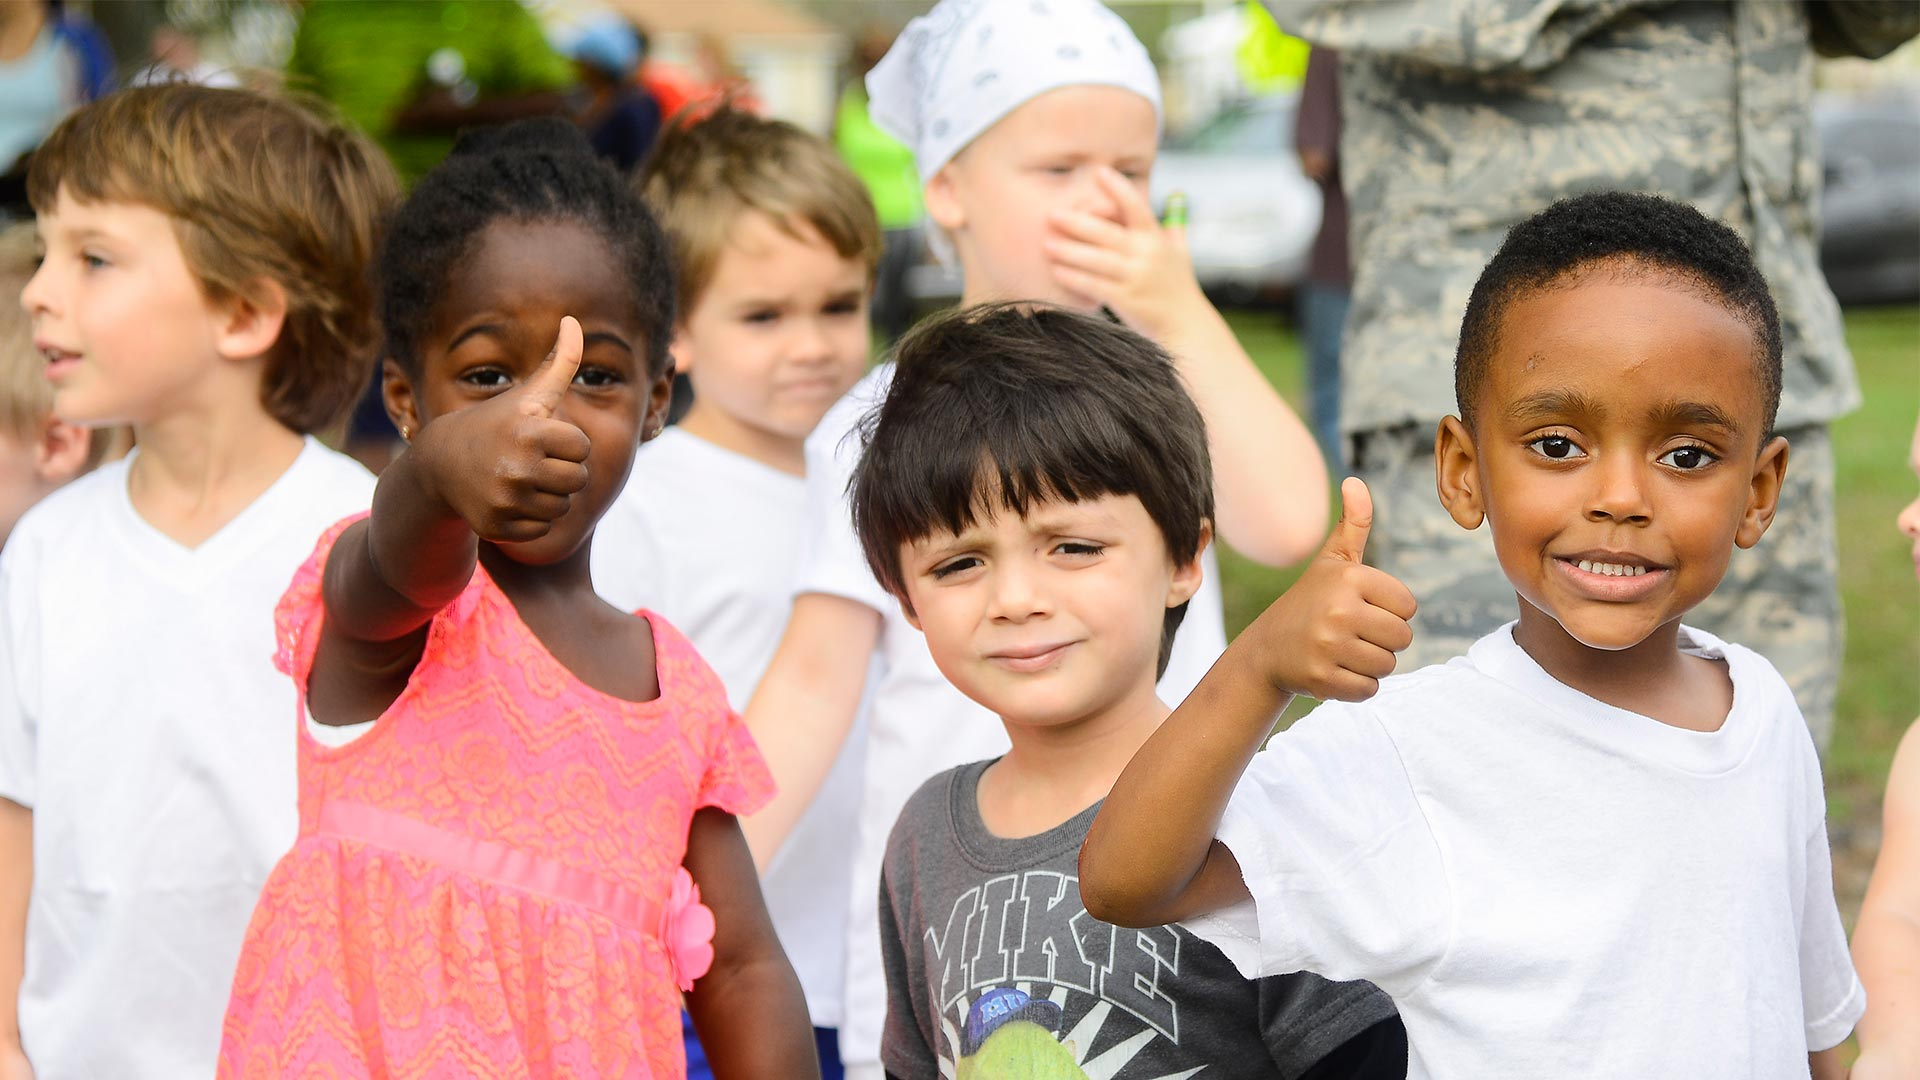 Young children give a thumbs up